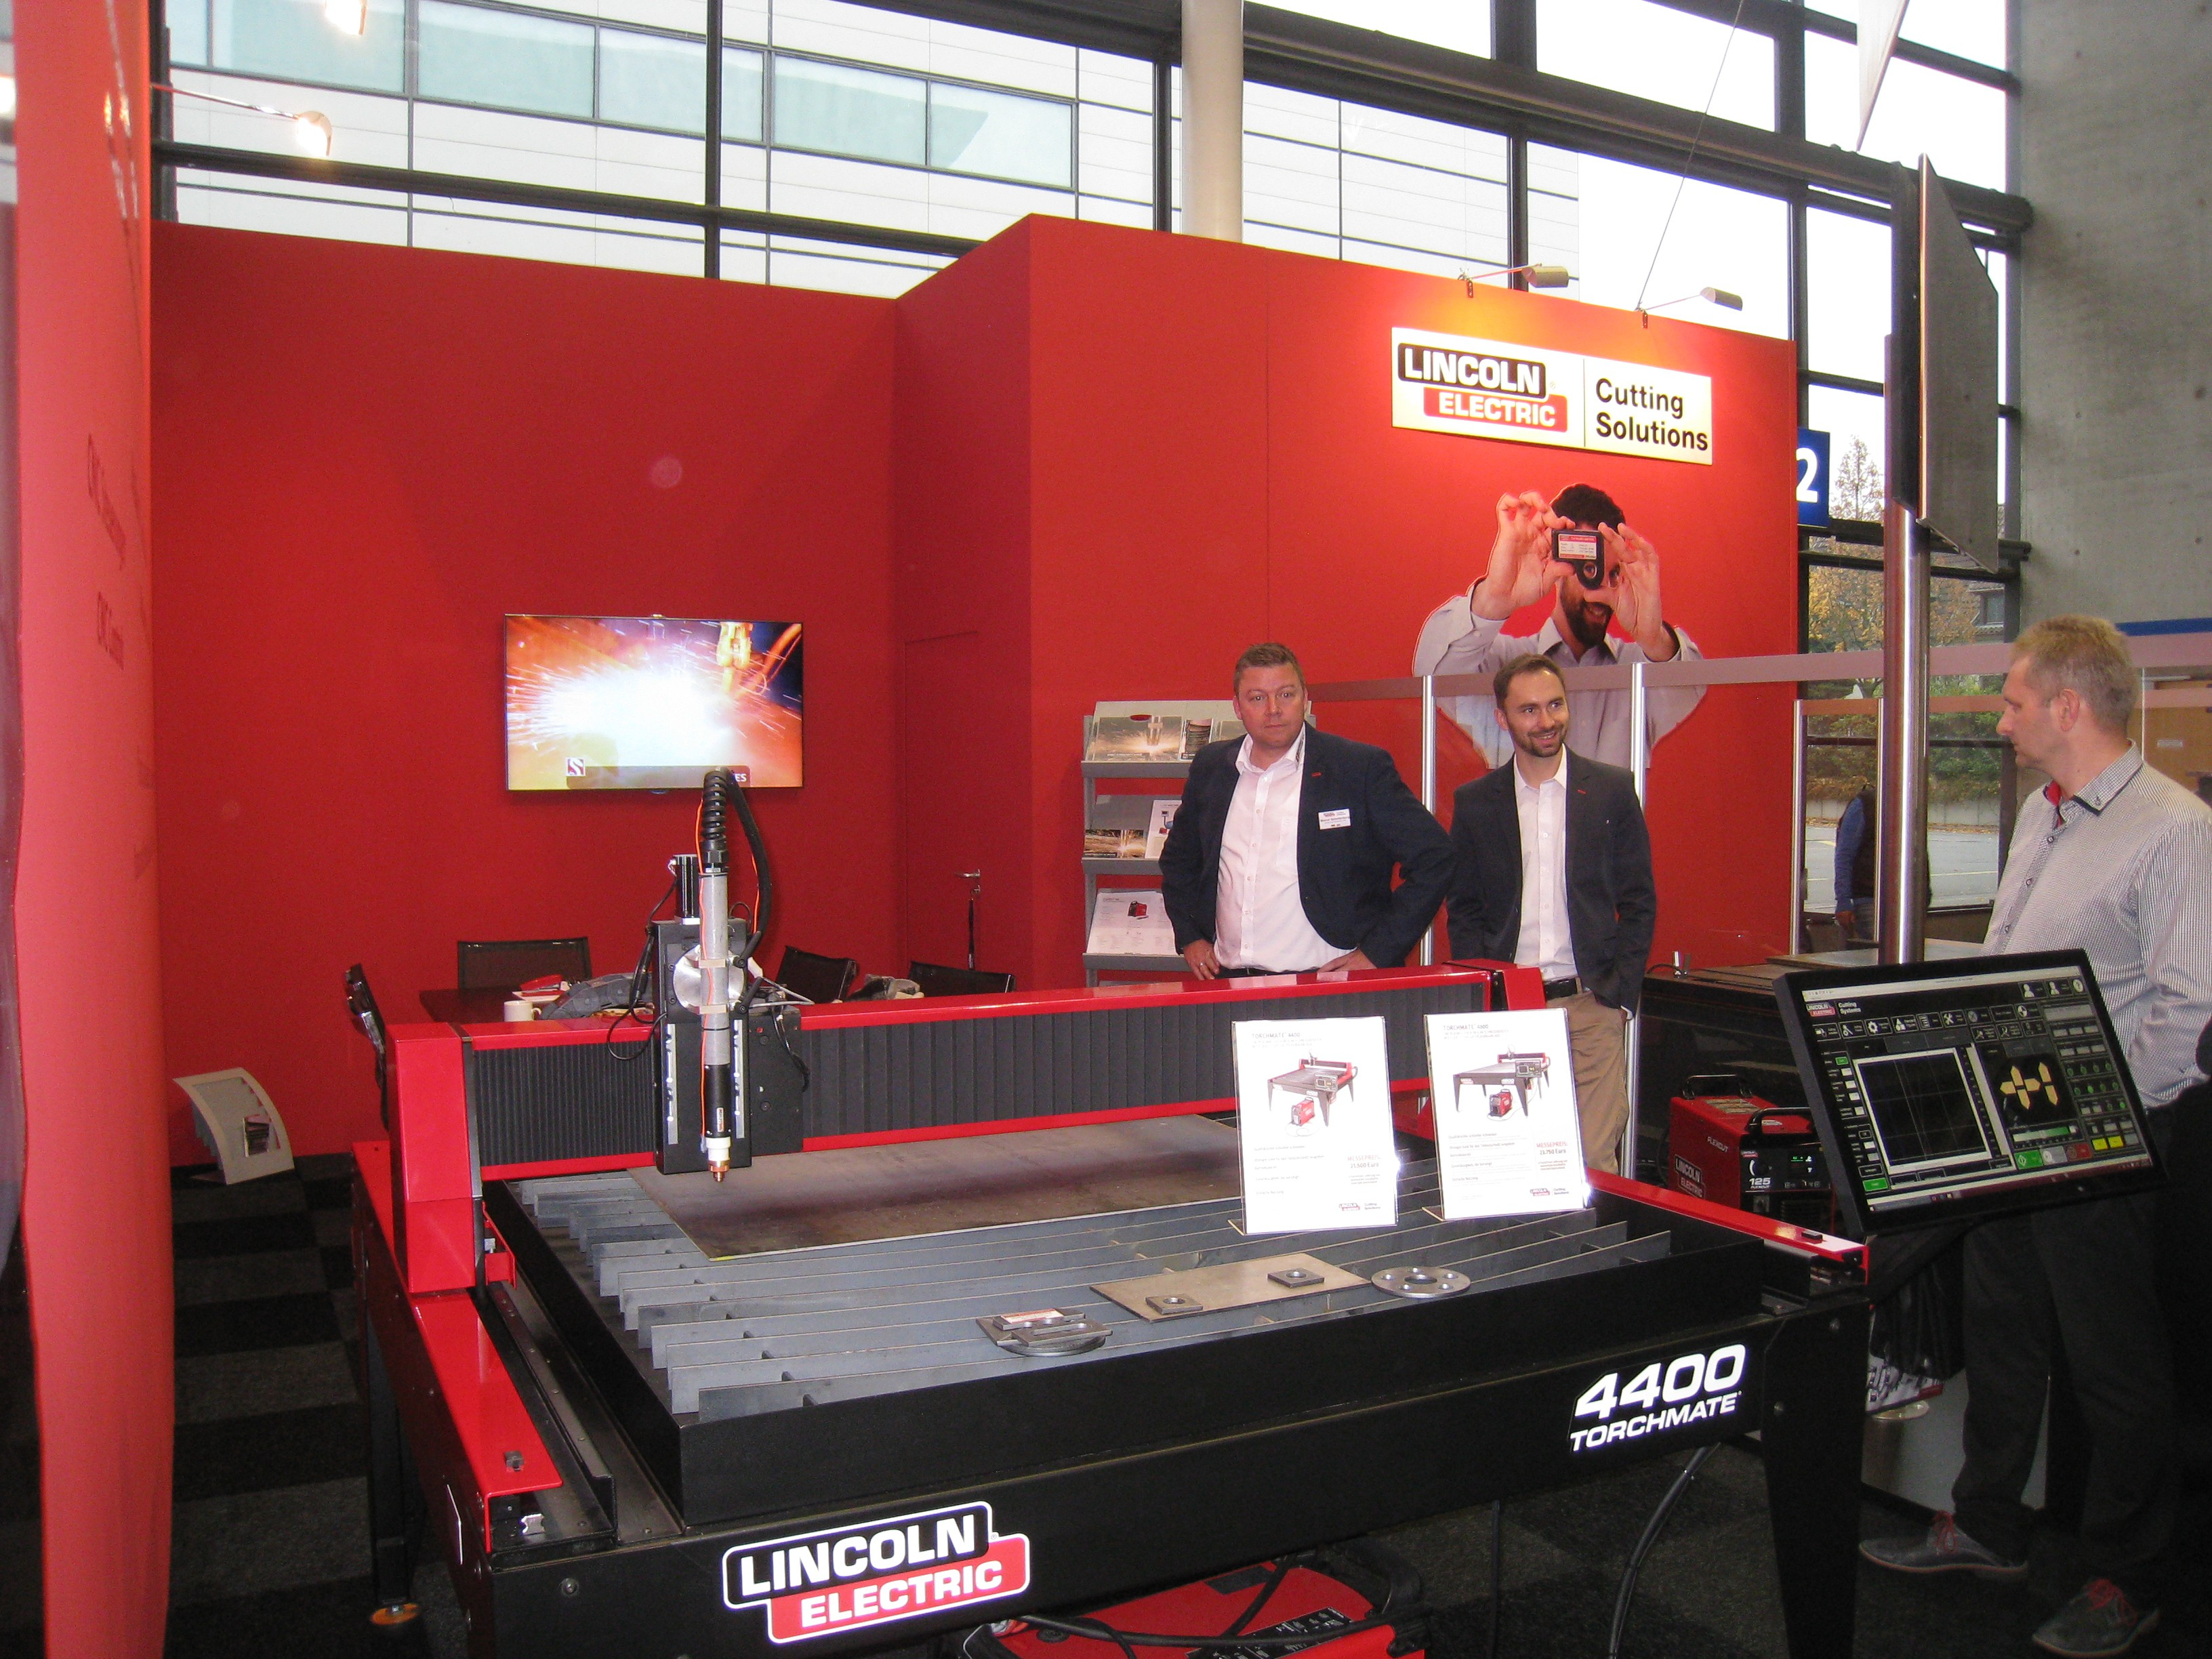 Interview mit Lincoln Electric - Cutting Solutions